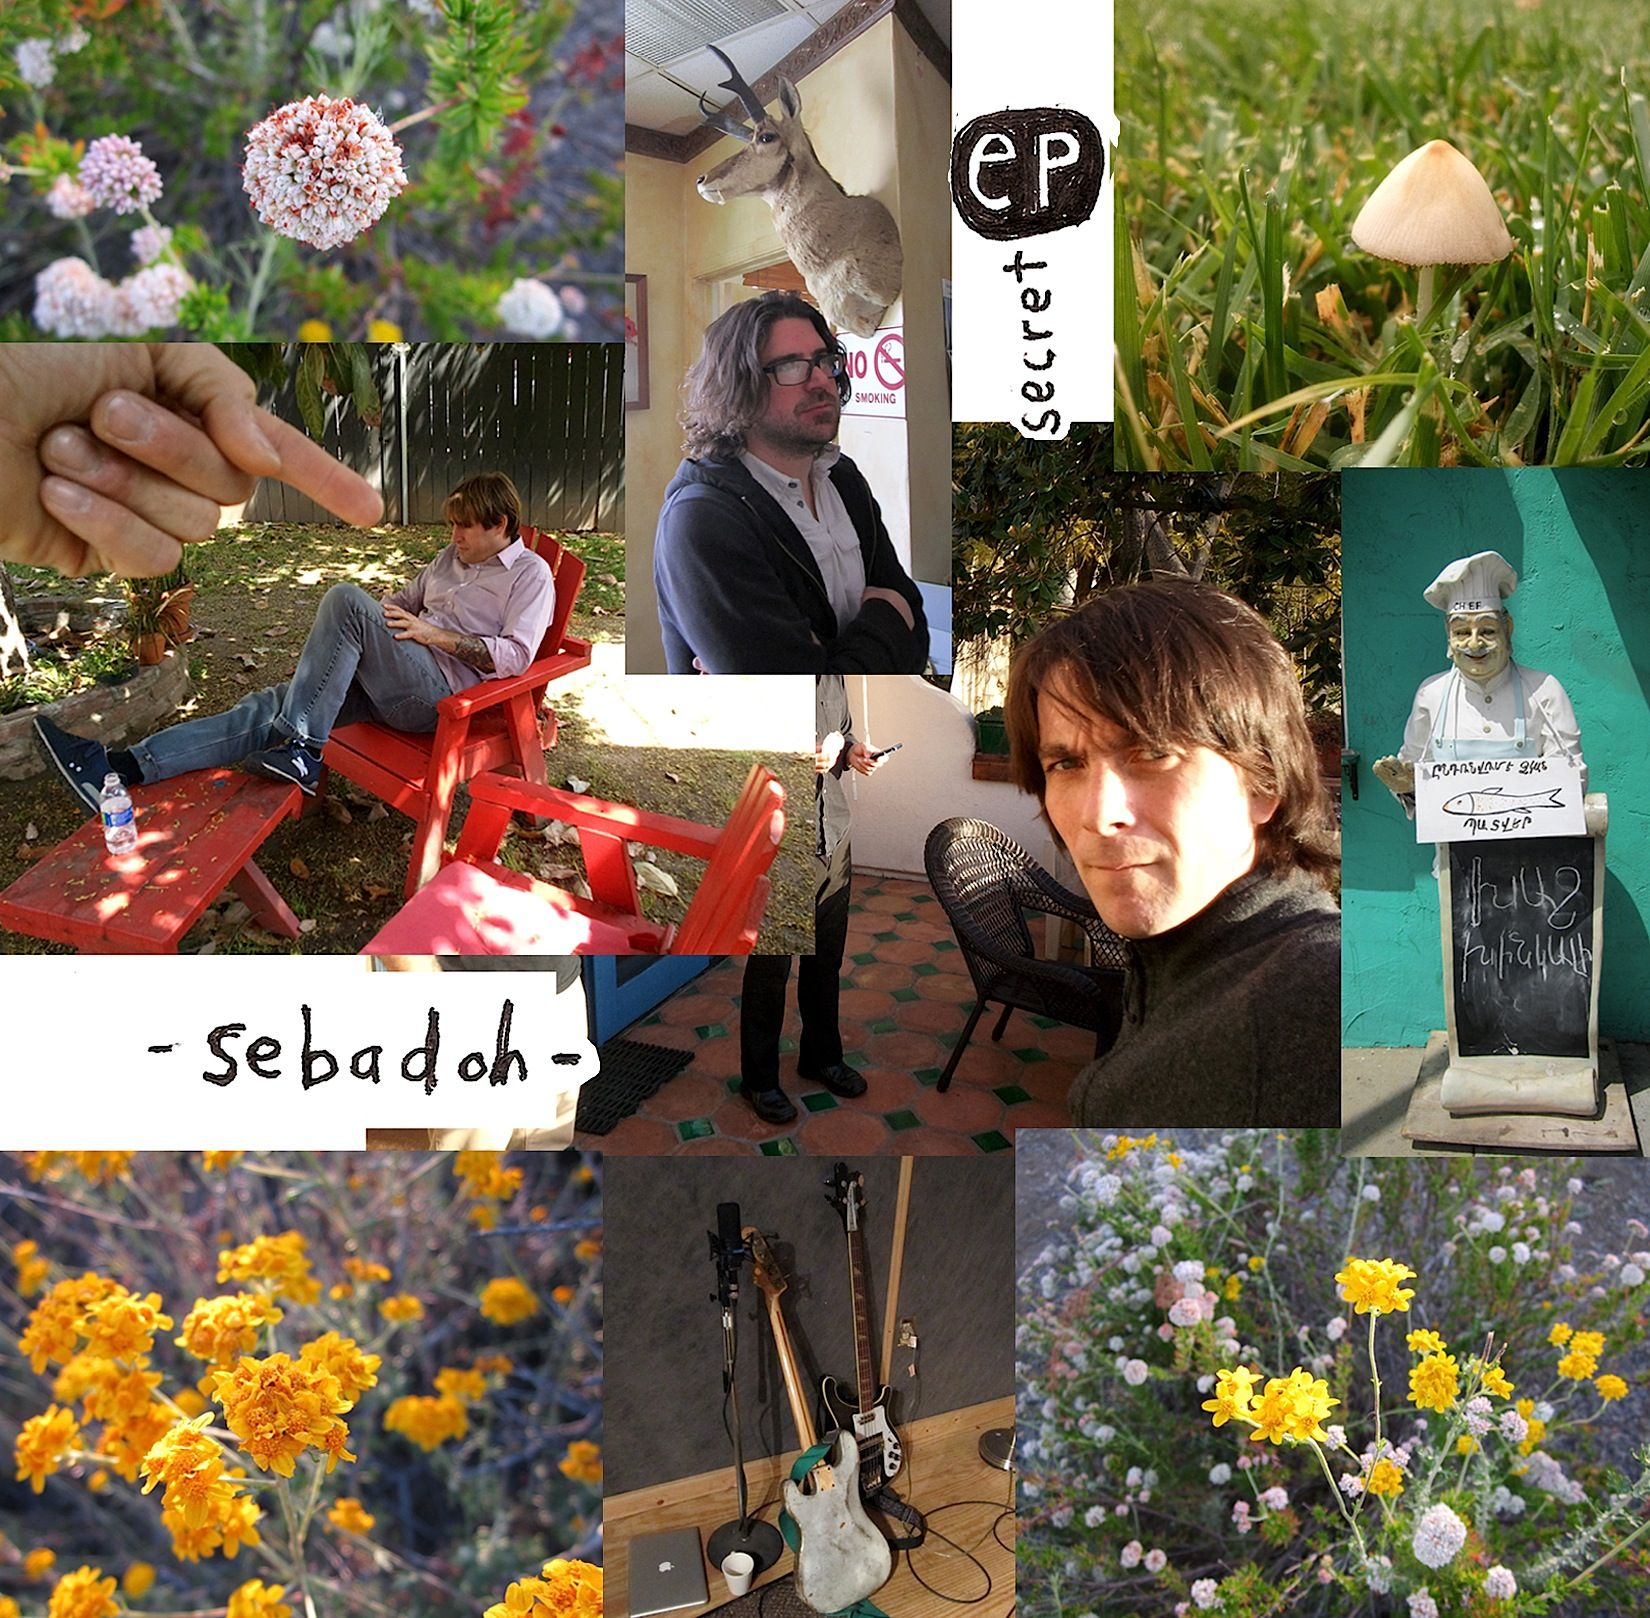 Today my friends in Sebadoh released their first new (amazing) music in FOURTEEN years. Get it for a fiver at Sebadoh.Bandcamp.com